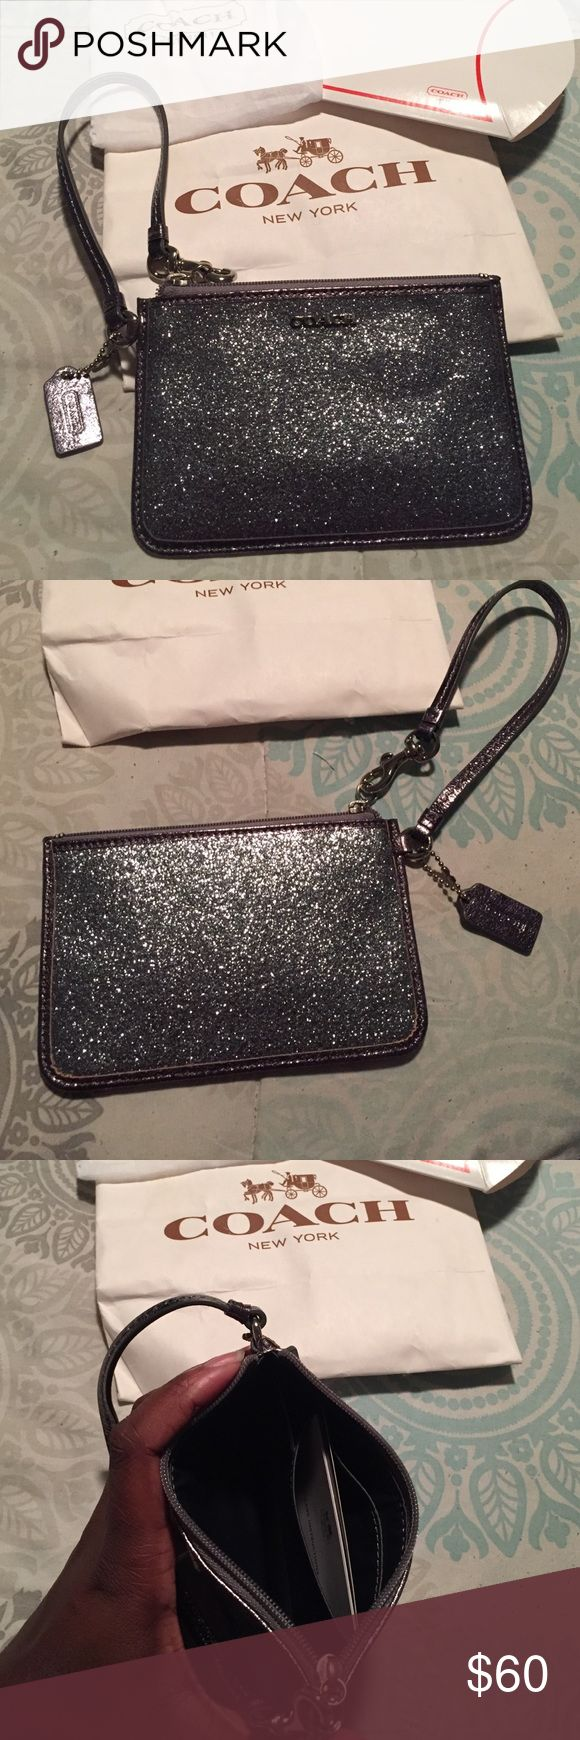 COACH WRISTLET Never Used ....Brand New (No Tag) Metallic Sparkle Coach Wristlet ... great for phone, ID,Cards and lipgloss Coach Bags Clutches & Wristlets